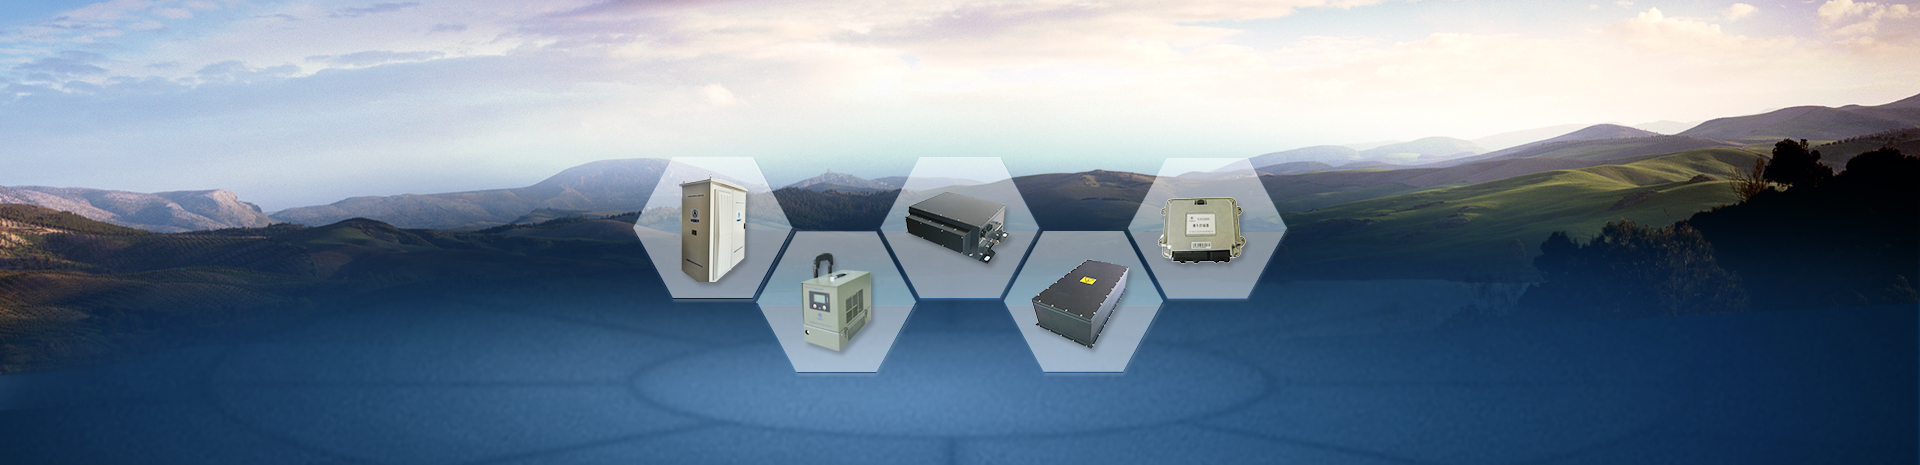 New Energy Systems and Components